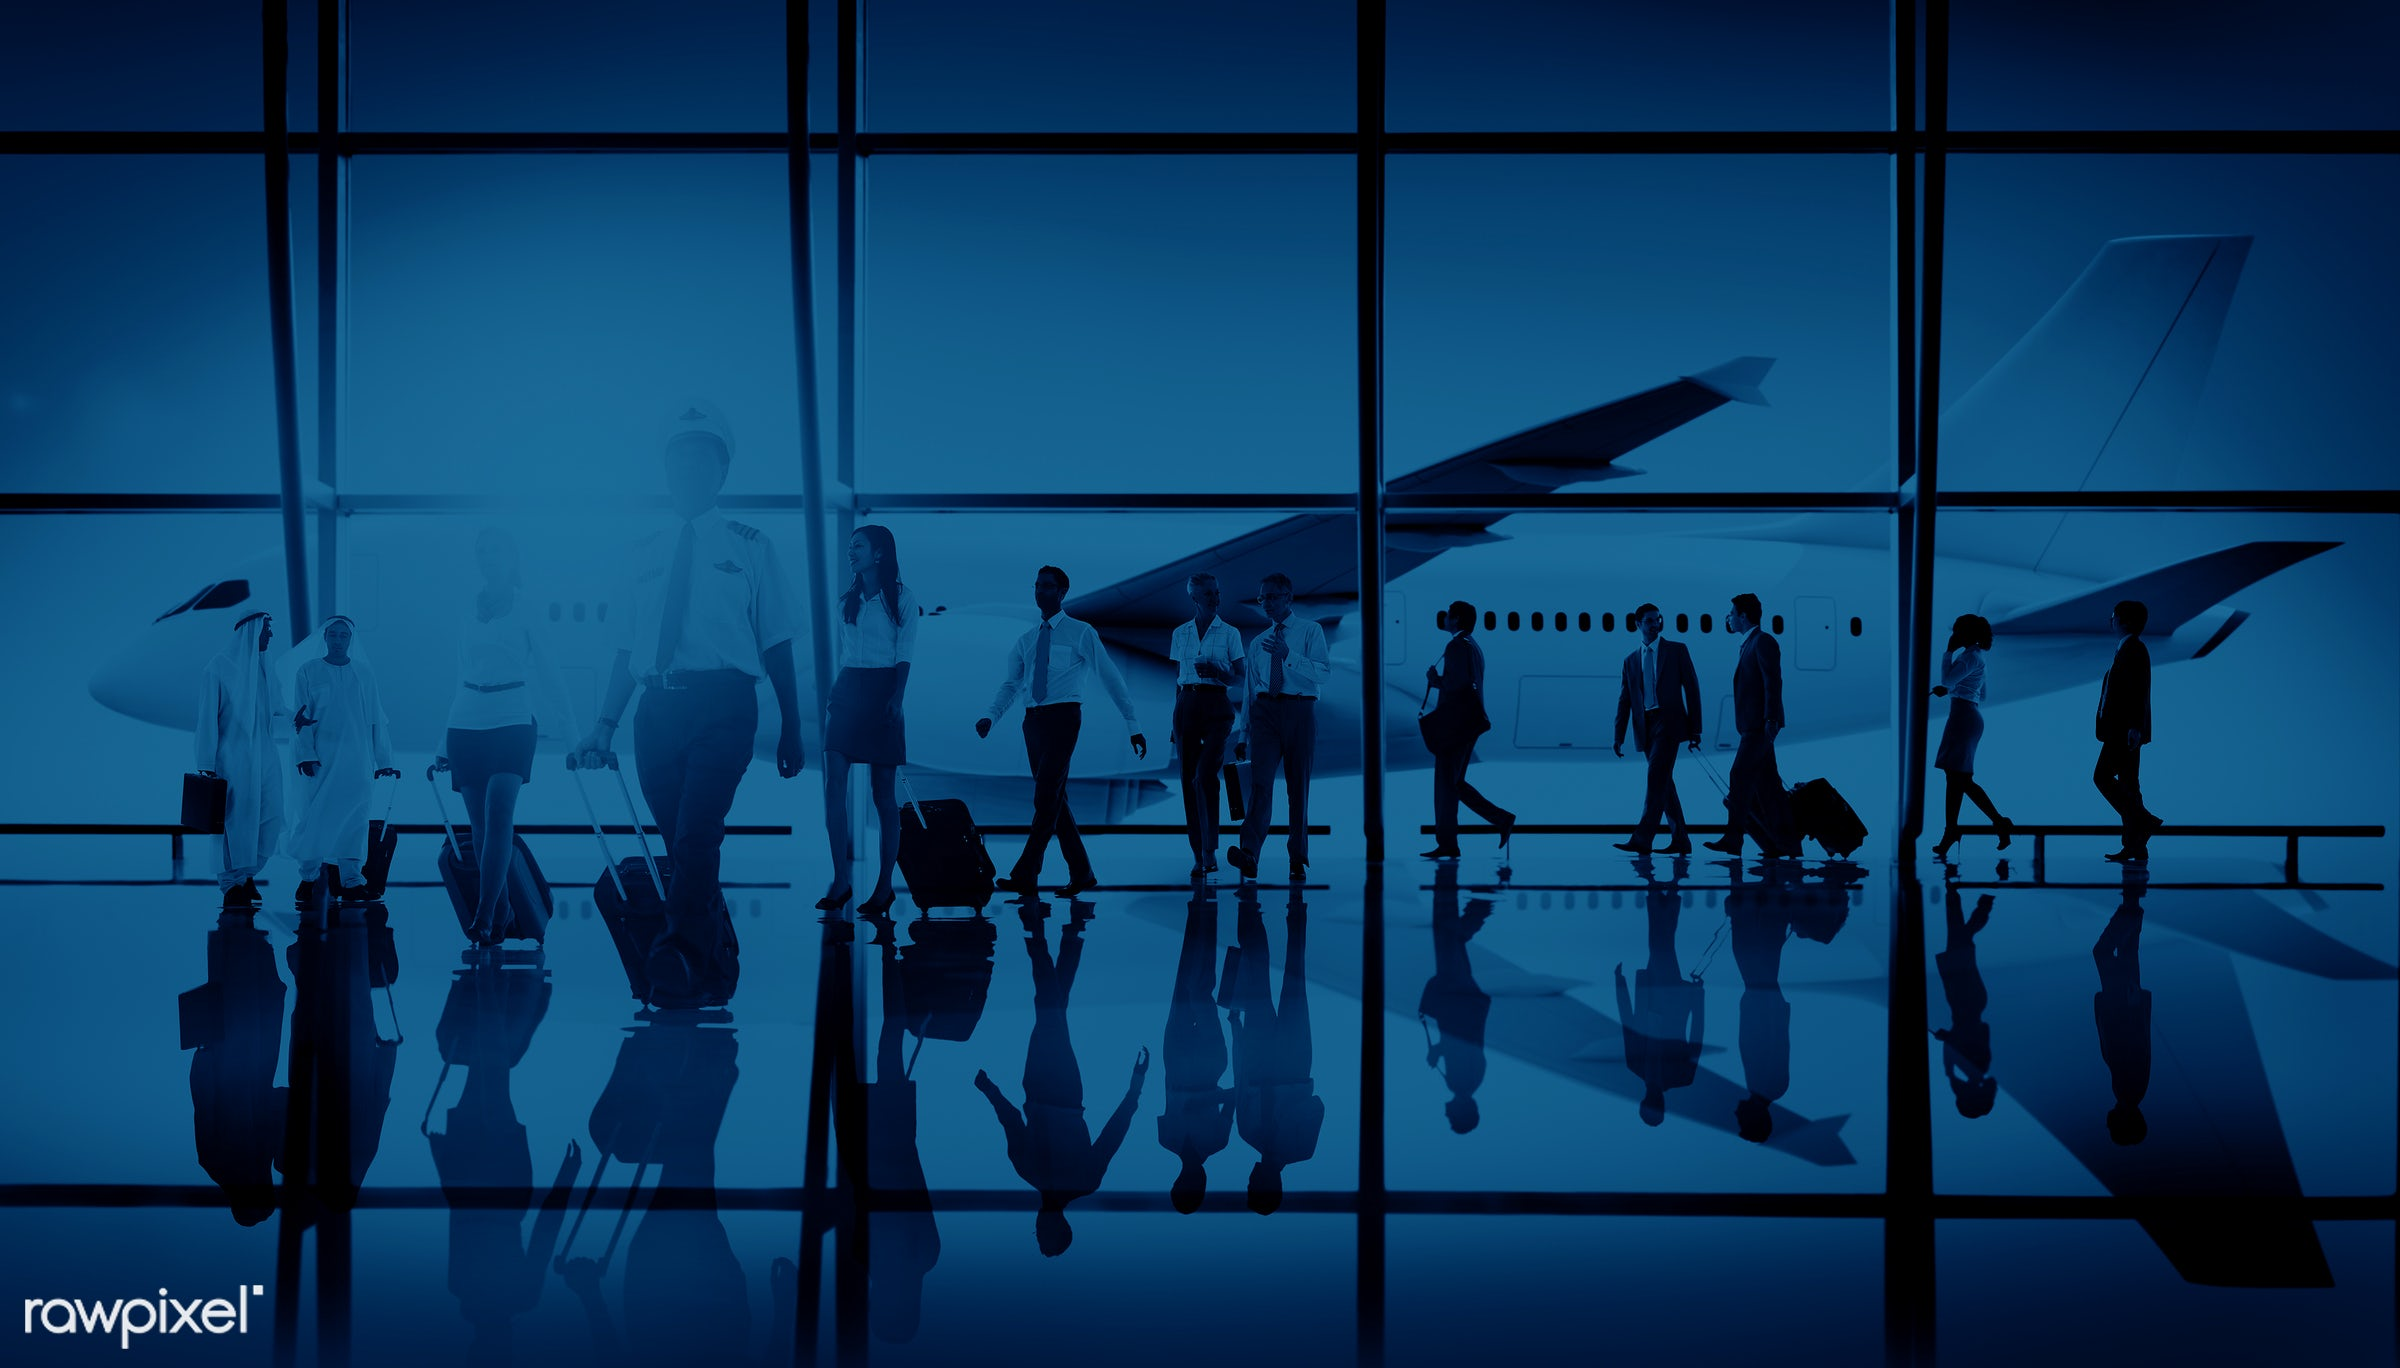 3d, african descent, air stewardess, aircraft, airplane, airport, asian ethnicity, back lit, baggage, blue, business,...